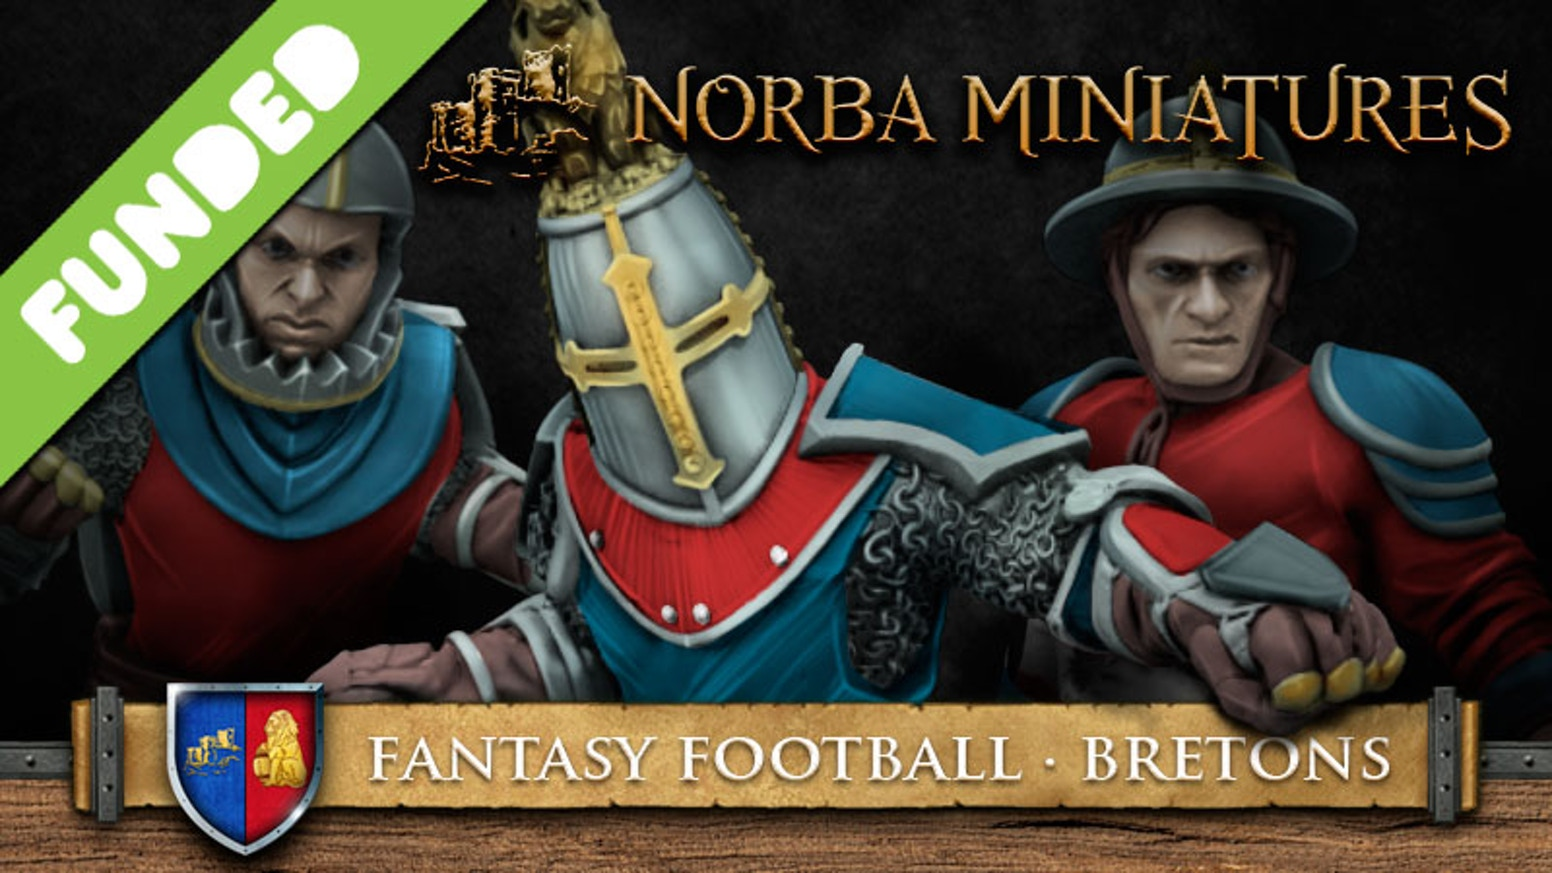 Fantasy Football Bret and humans Norba Miniatures